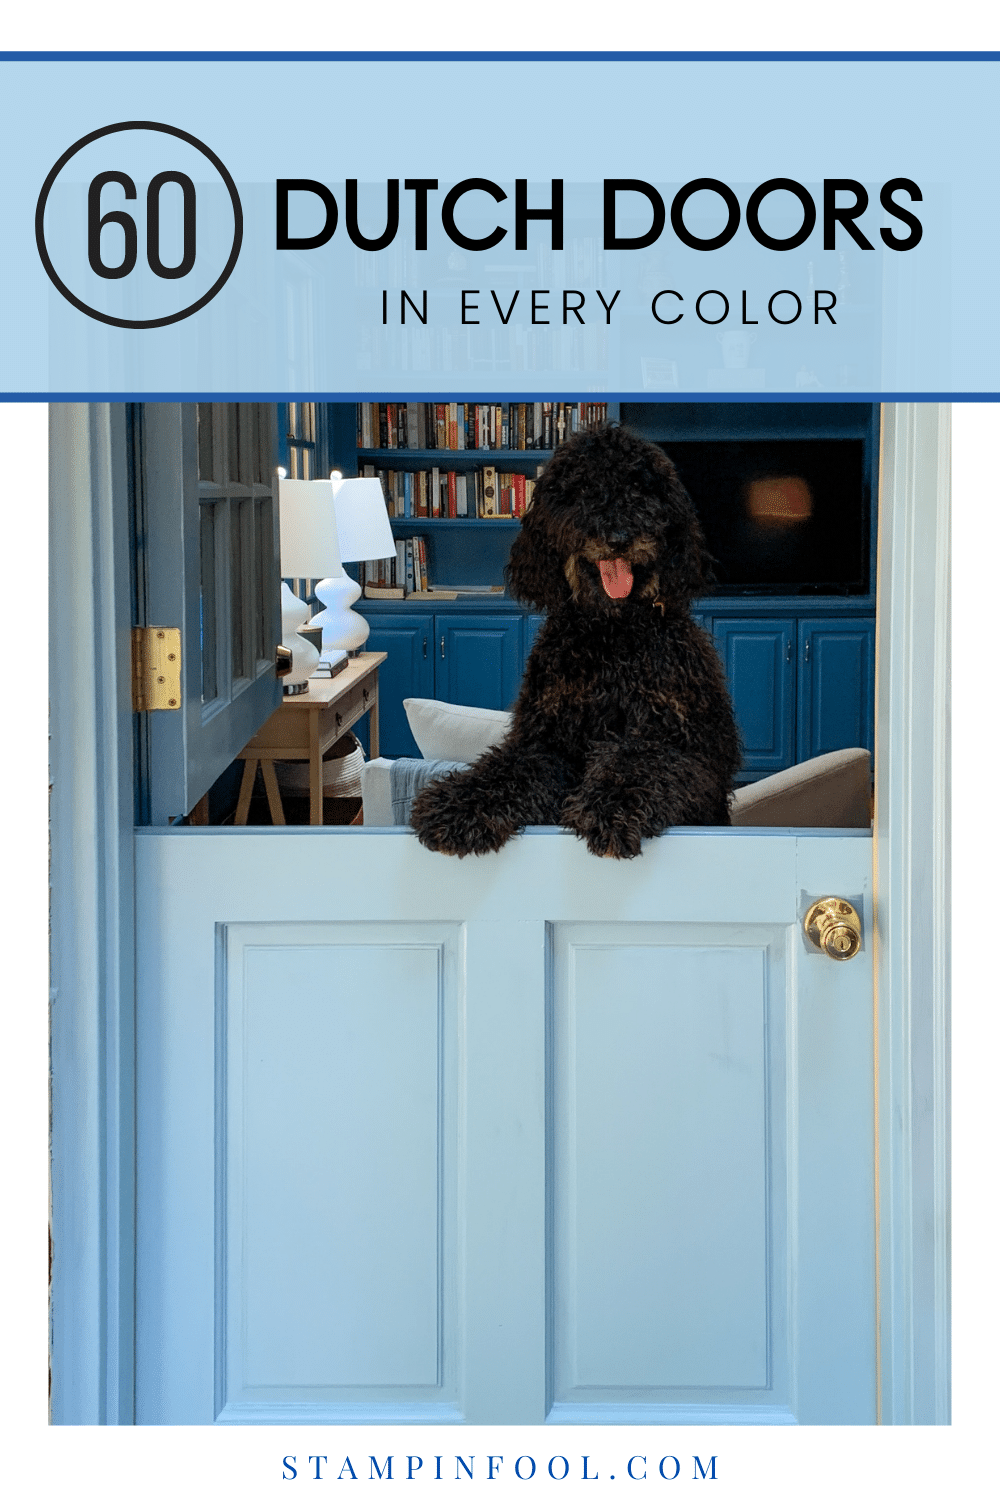 THE TIMELESS LOOK OF A DUTCH DOORS + OUR GORGEOUS DUTCH DOOR & MORE